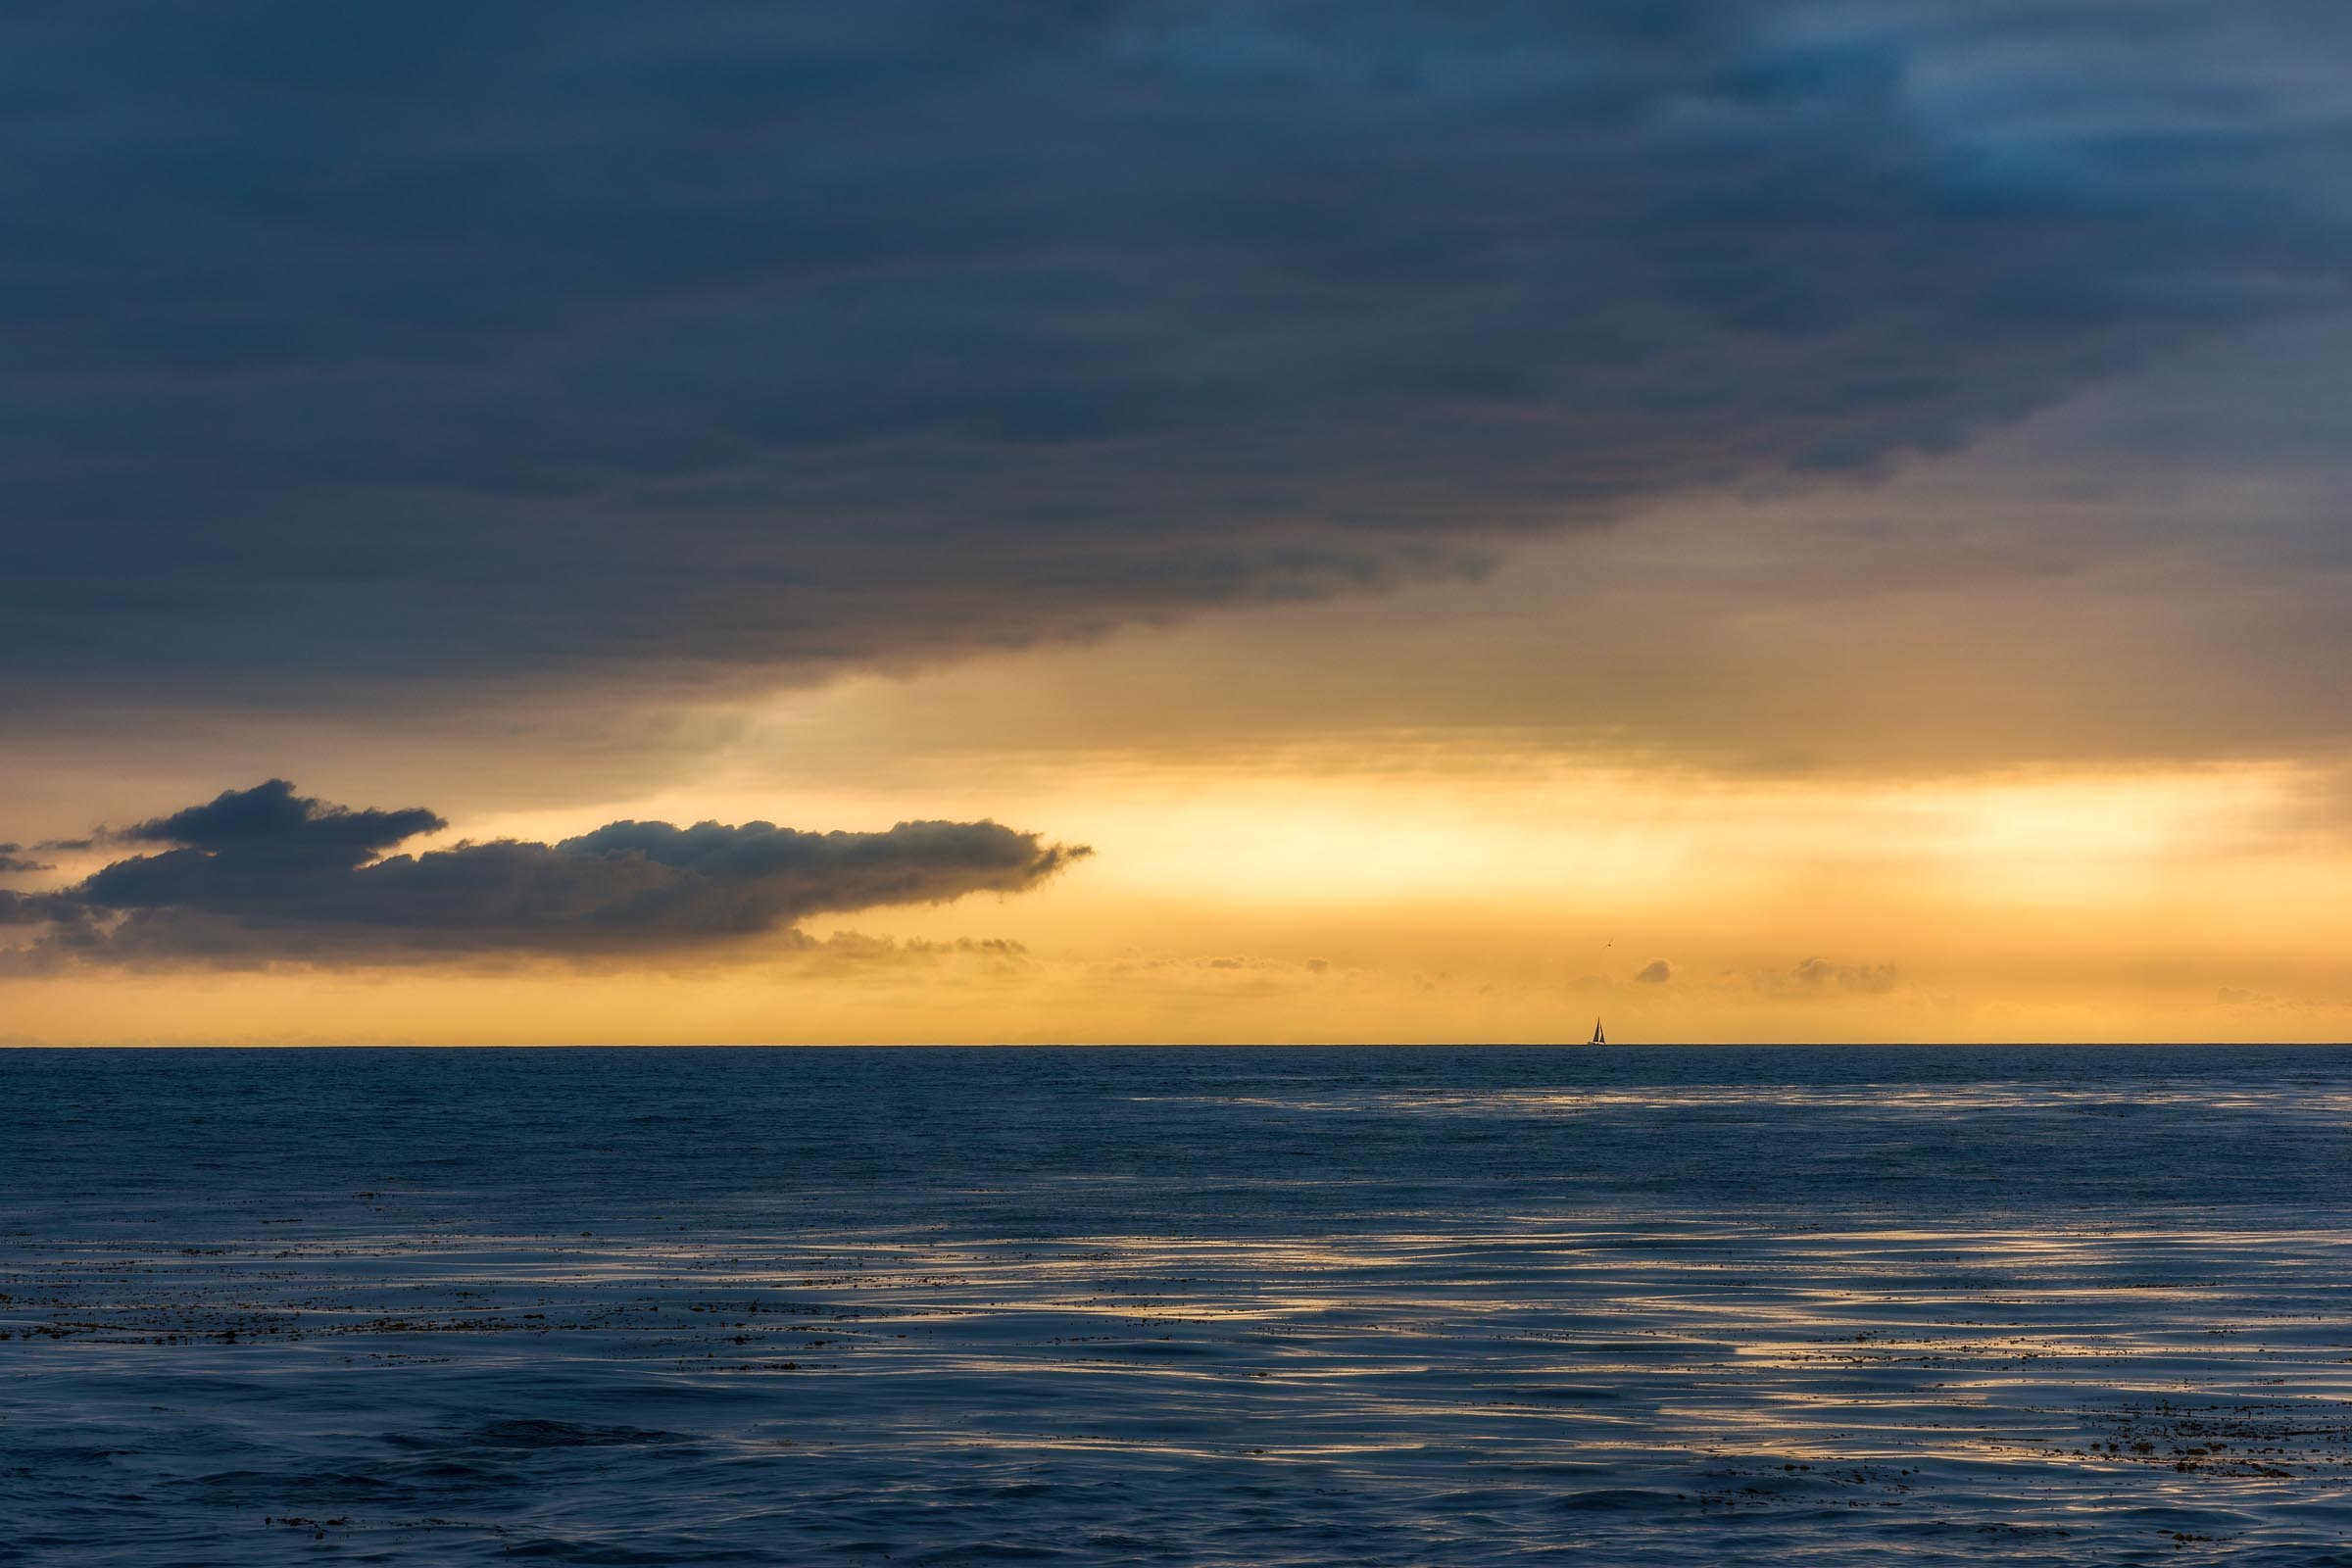 Photograph of Sailboat in Palos Verdes, California by Brent Goldman Photography